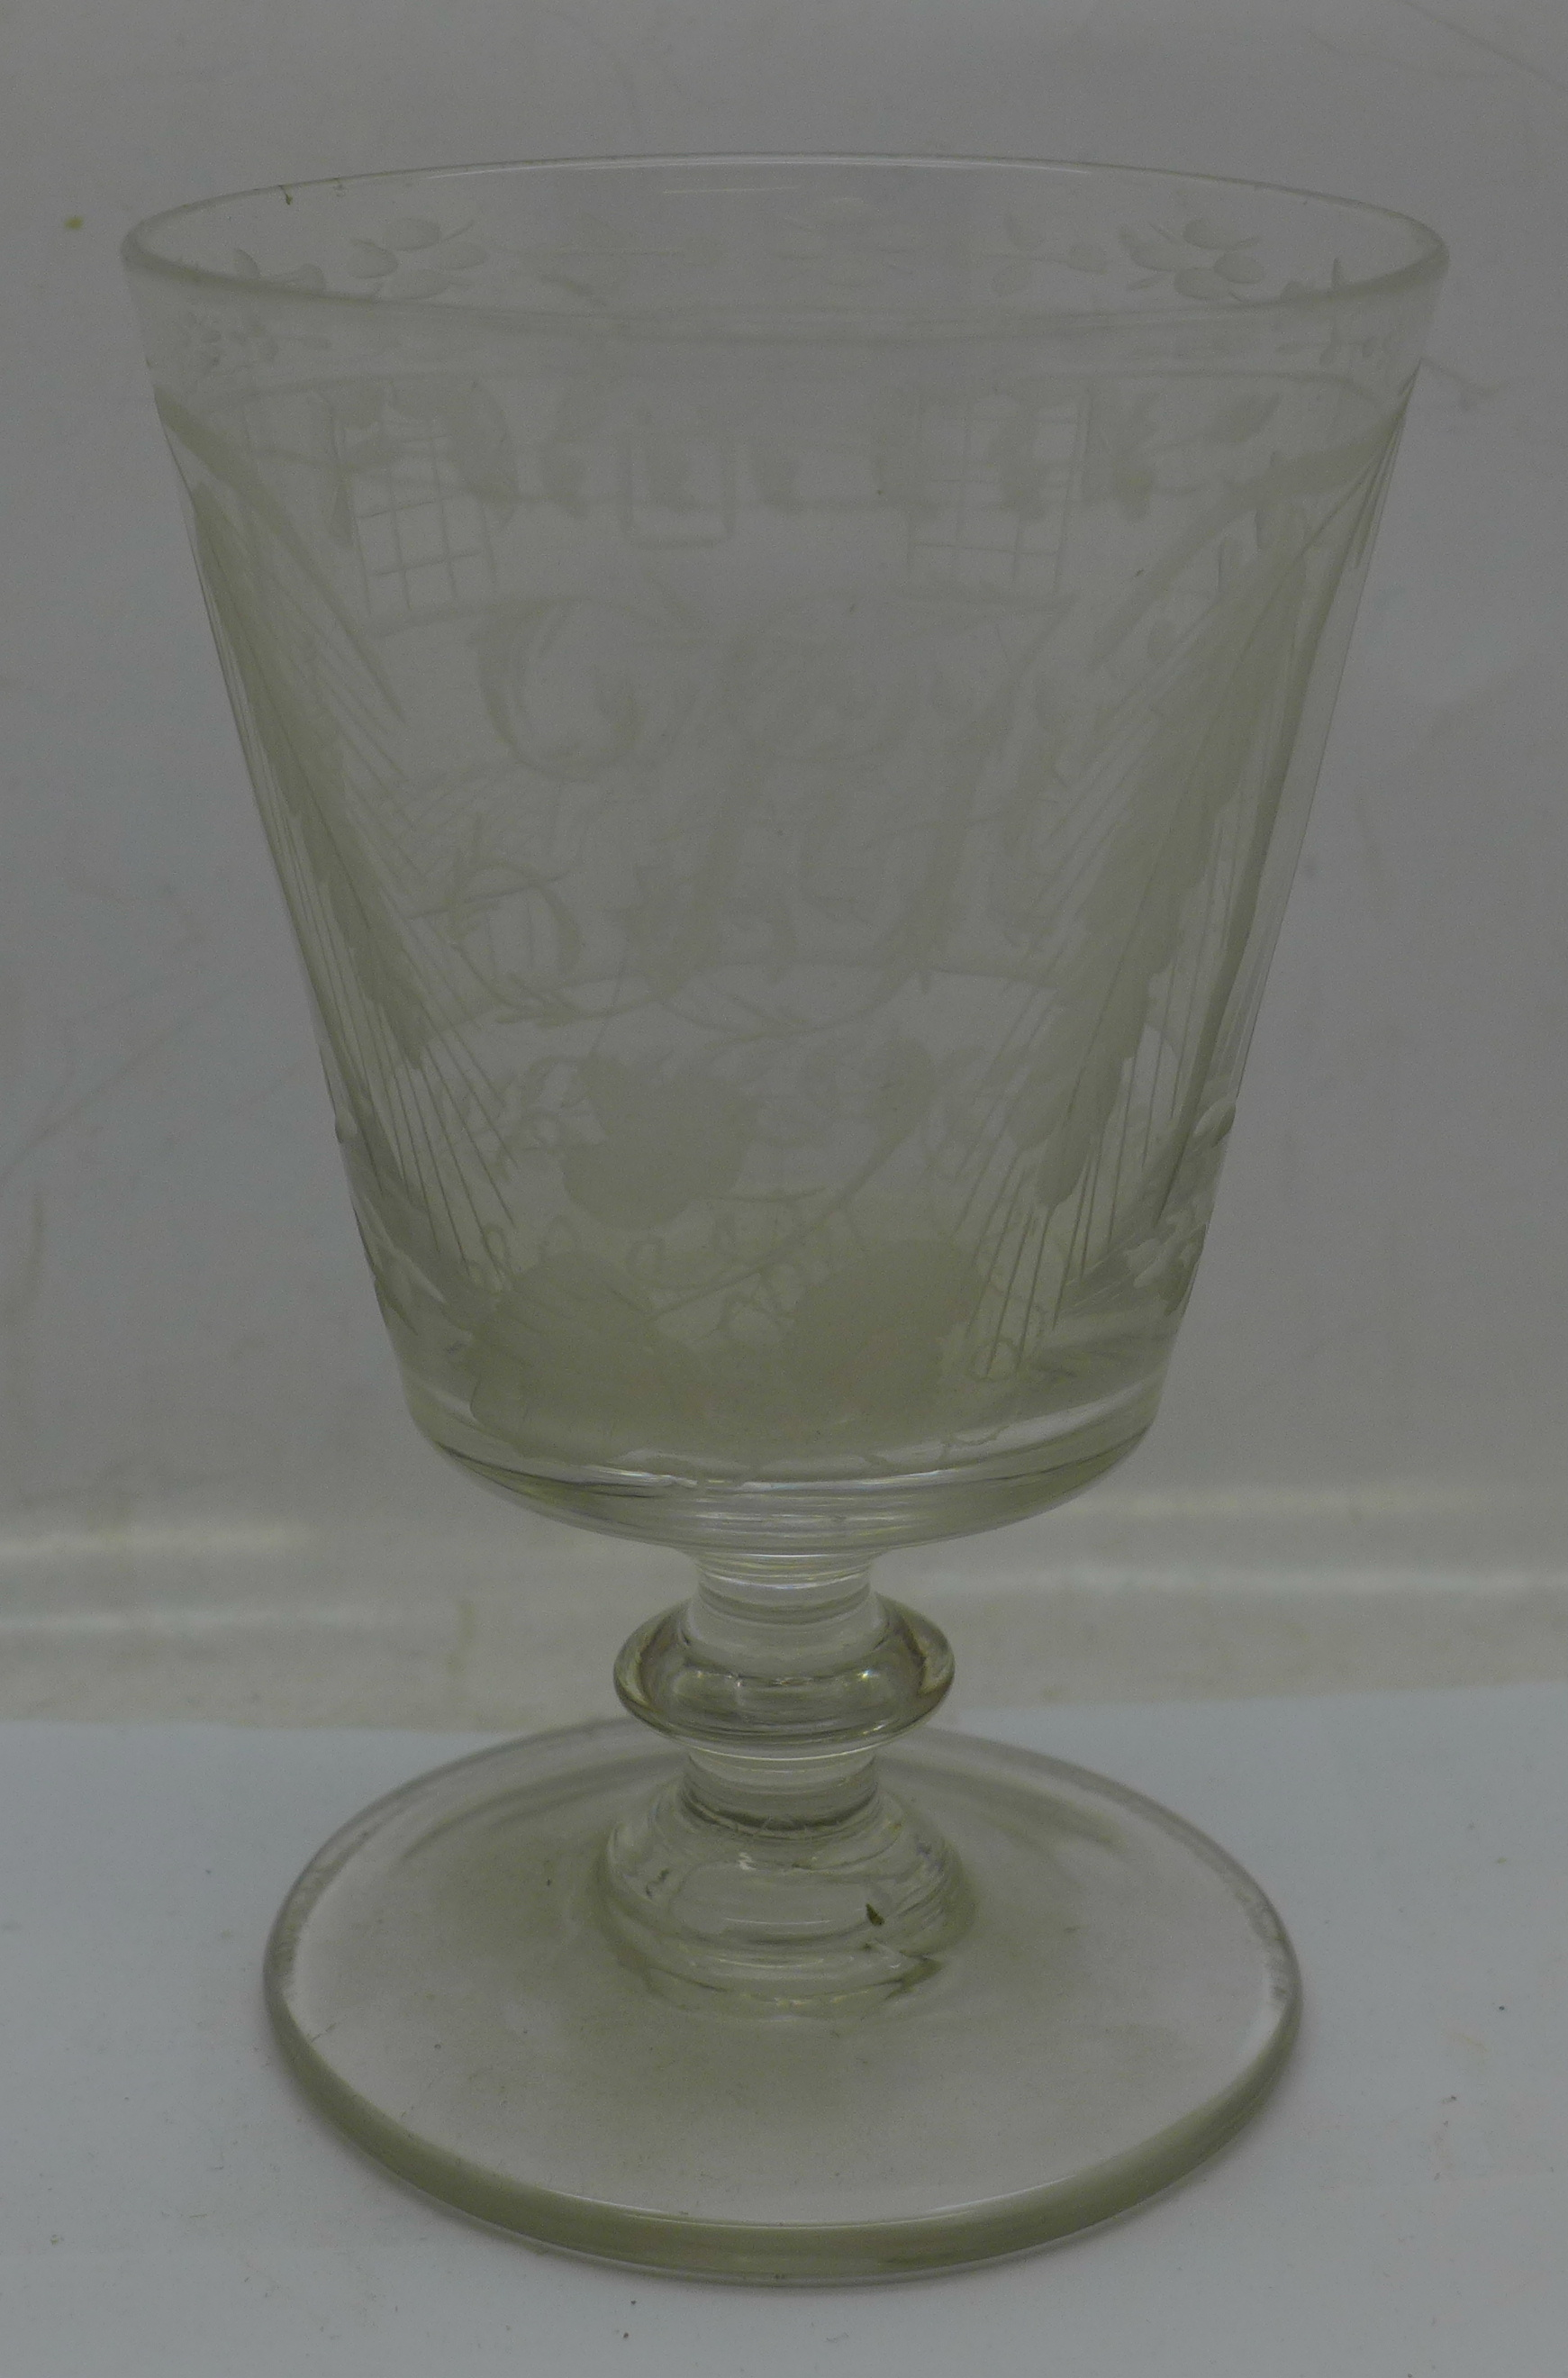 A 19th Century etched glass rummer, 133mm